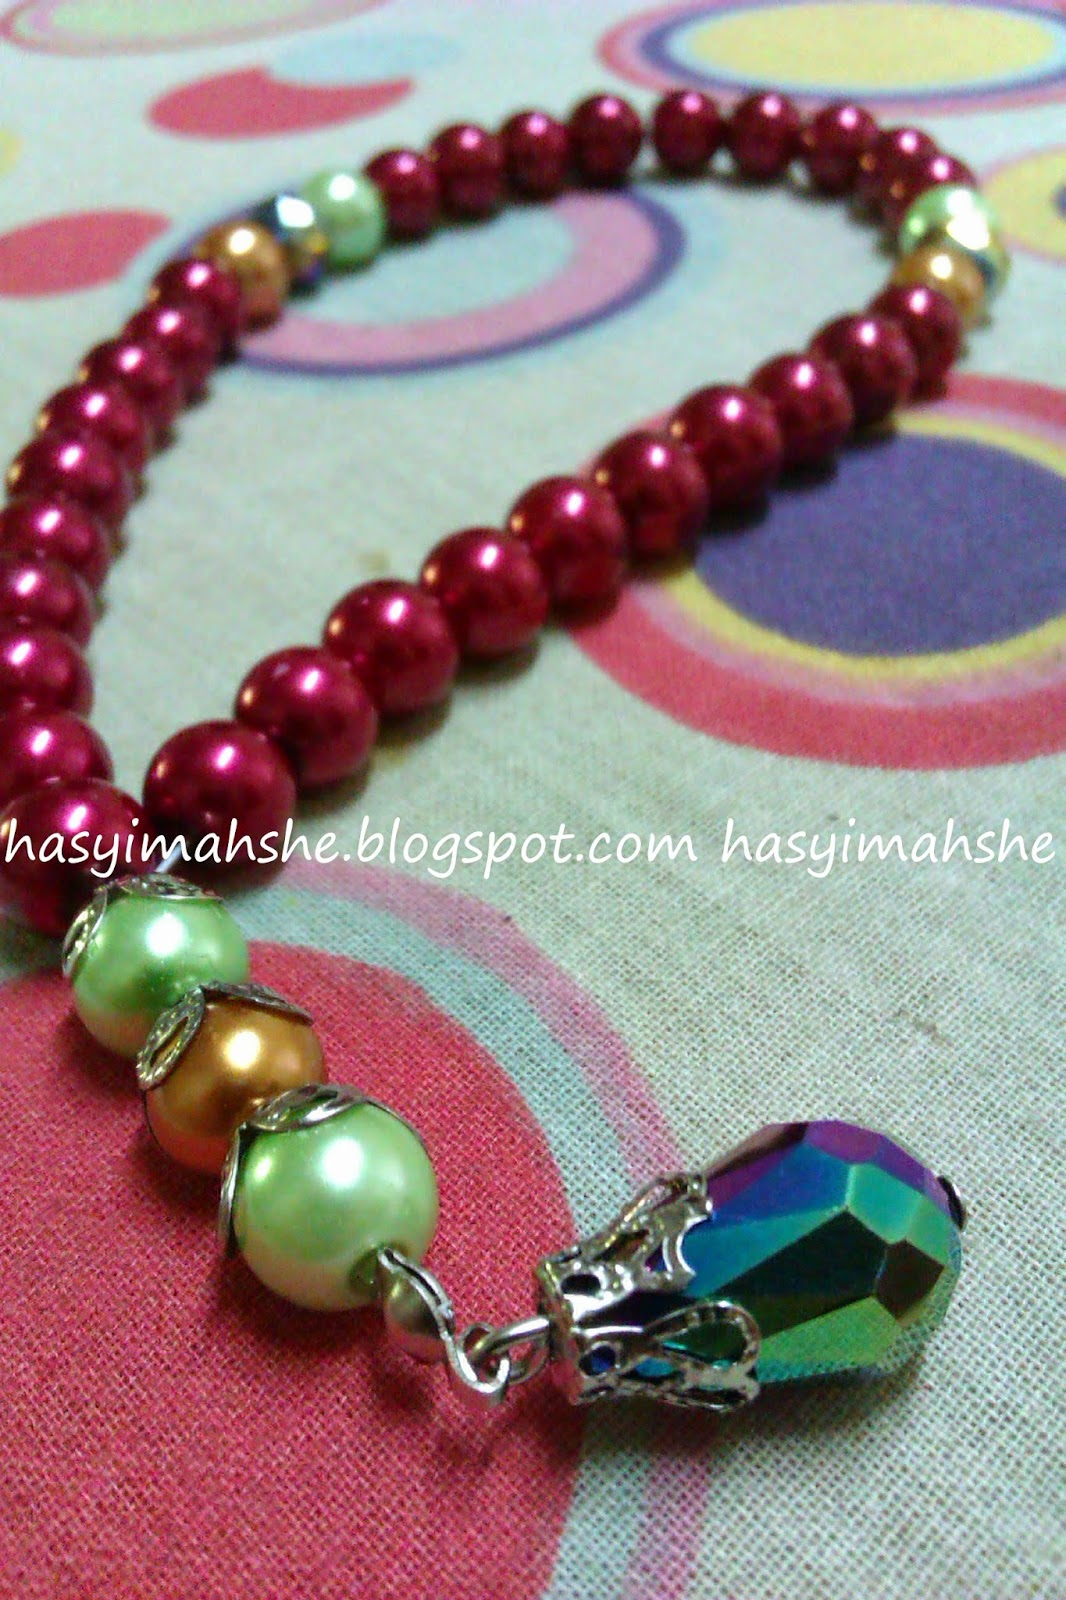 TASBIH MINI AKMA PART 2